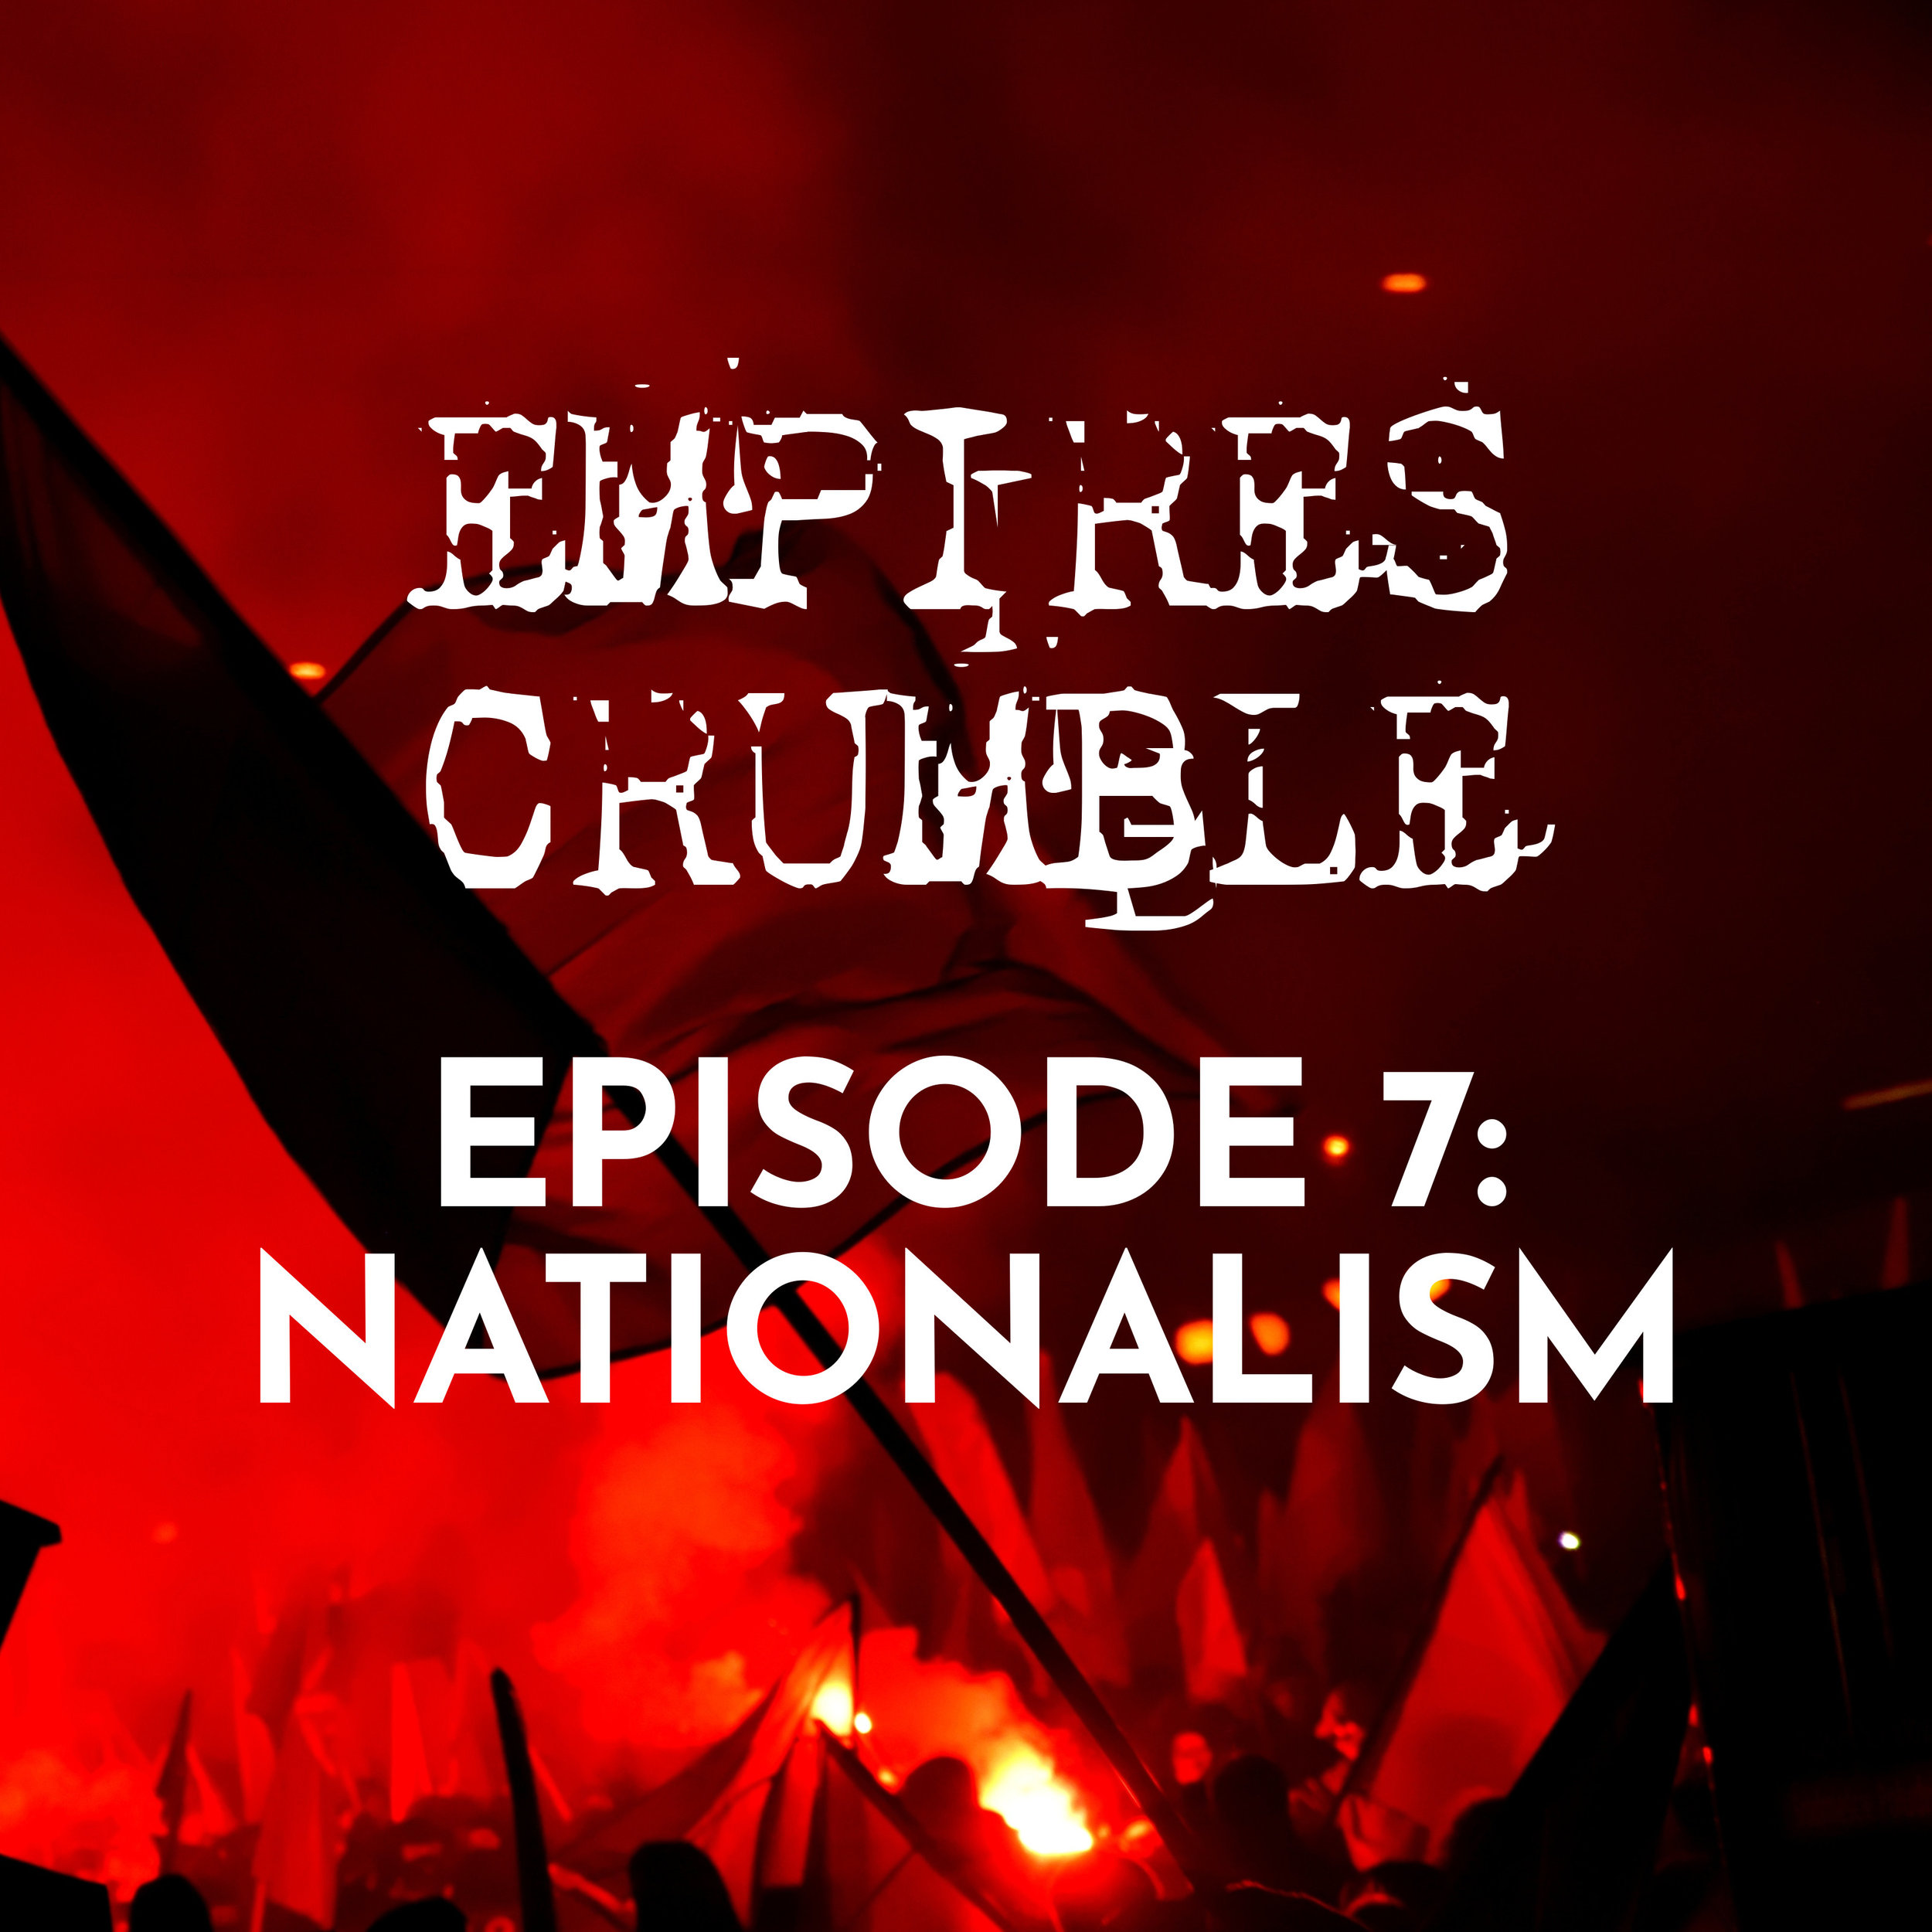 EMPIRES CRUMBLE 07.jpg